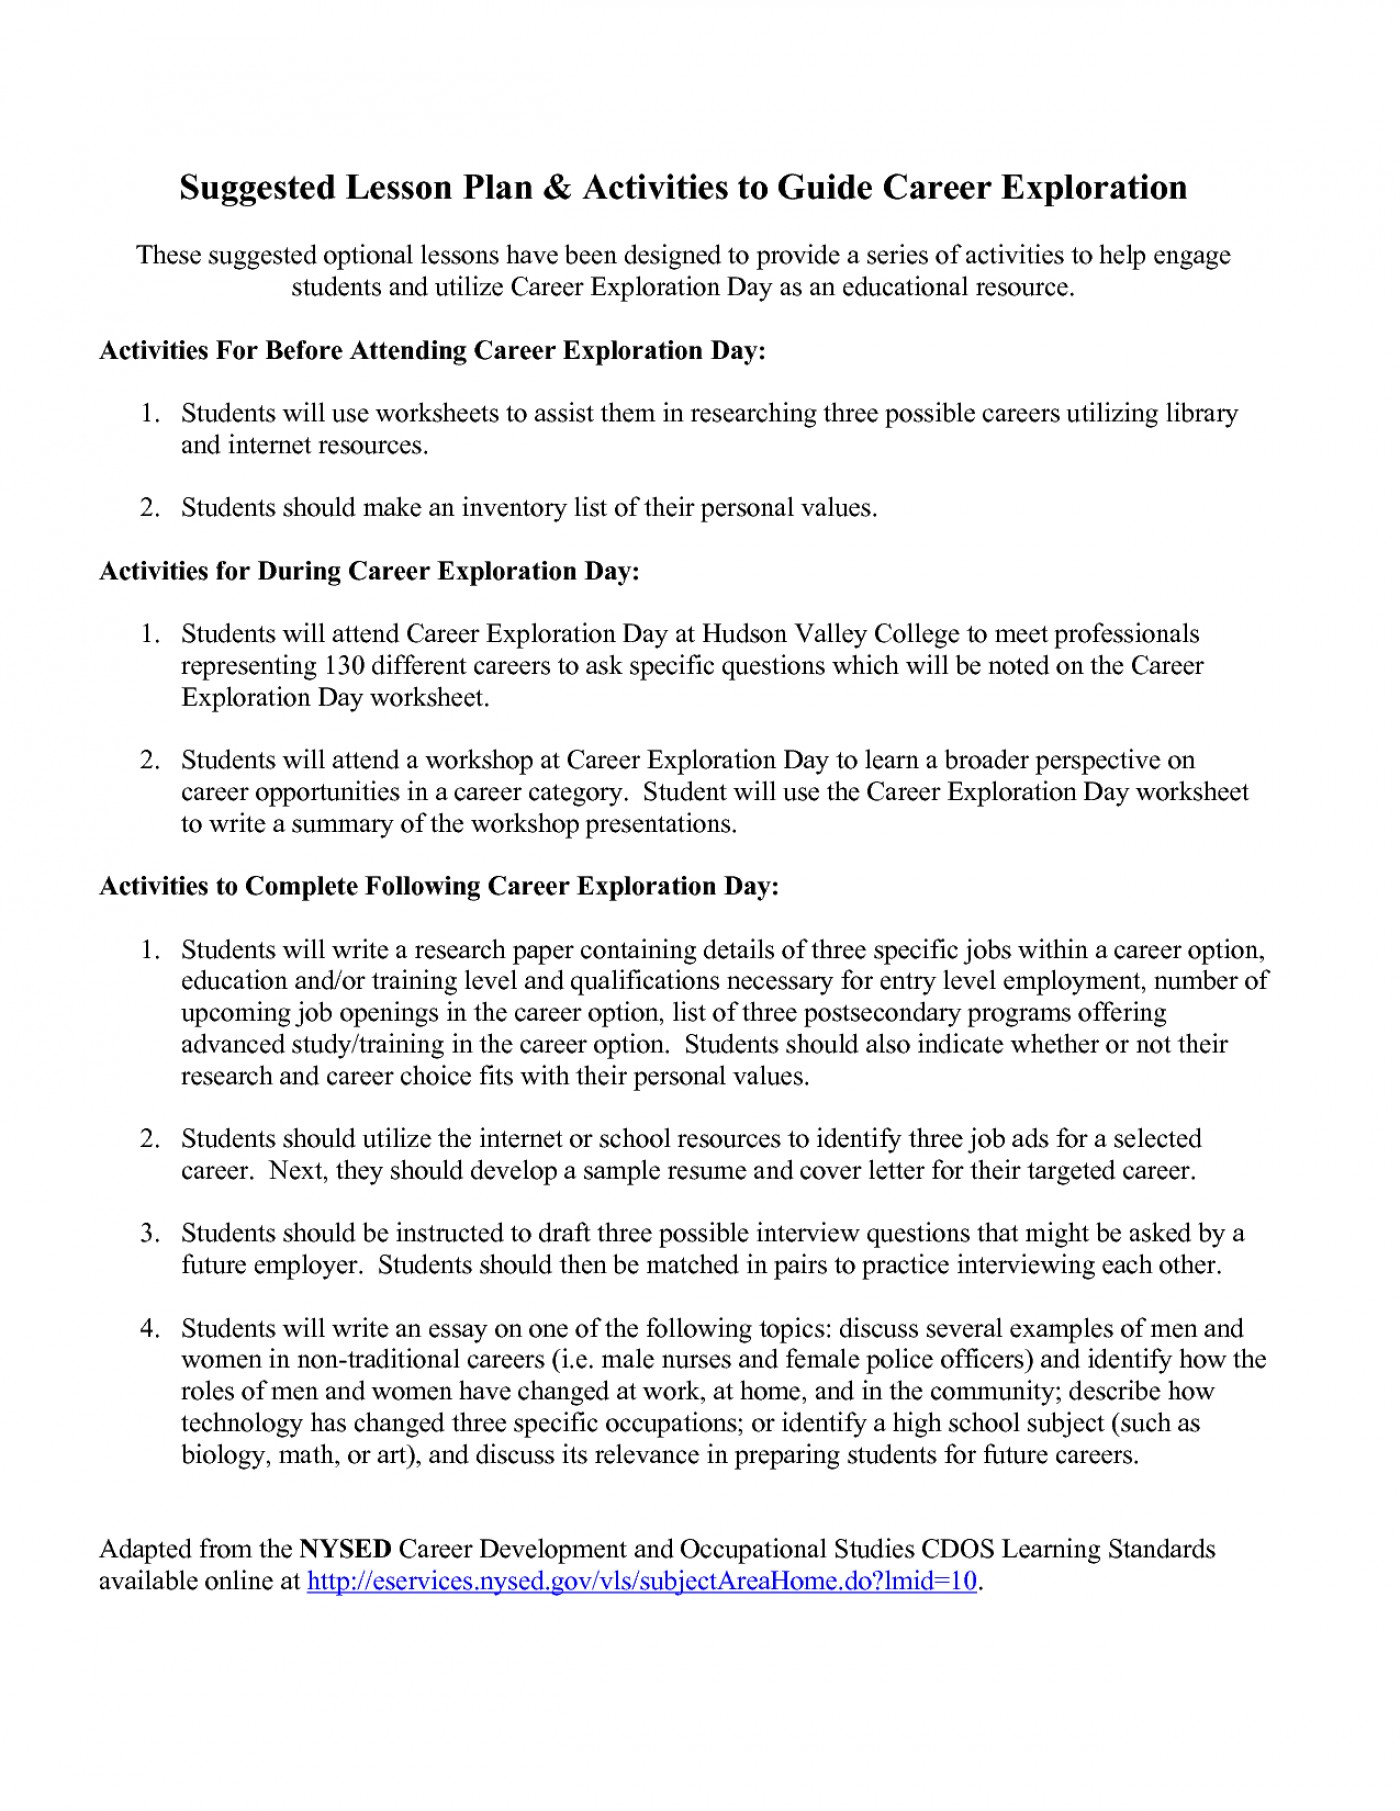 017 Career Exploration Research Paper Example Year Plan